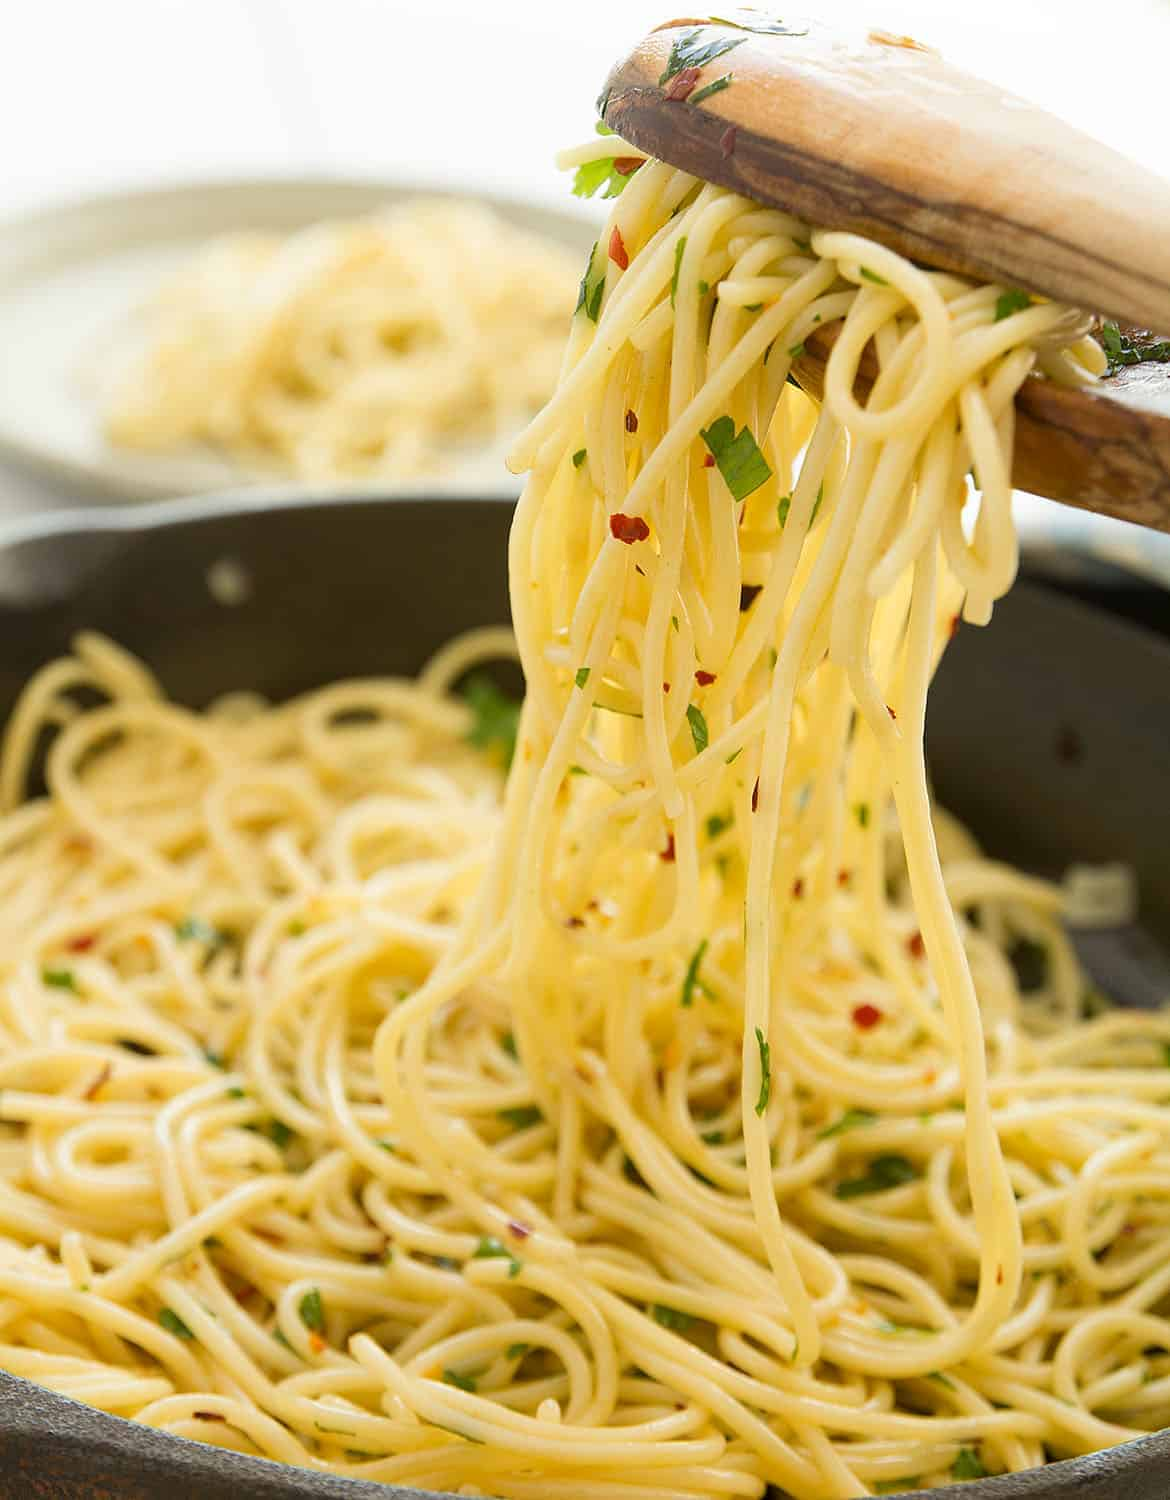 Two wooden spoons are lifting some pasta with garlic and olive oil.